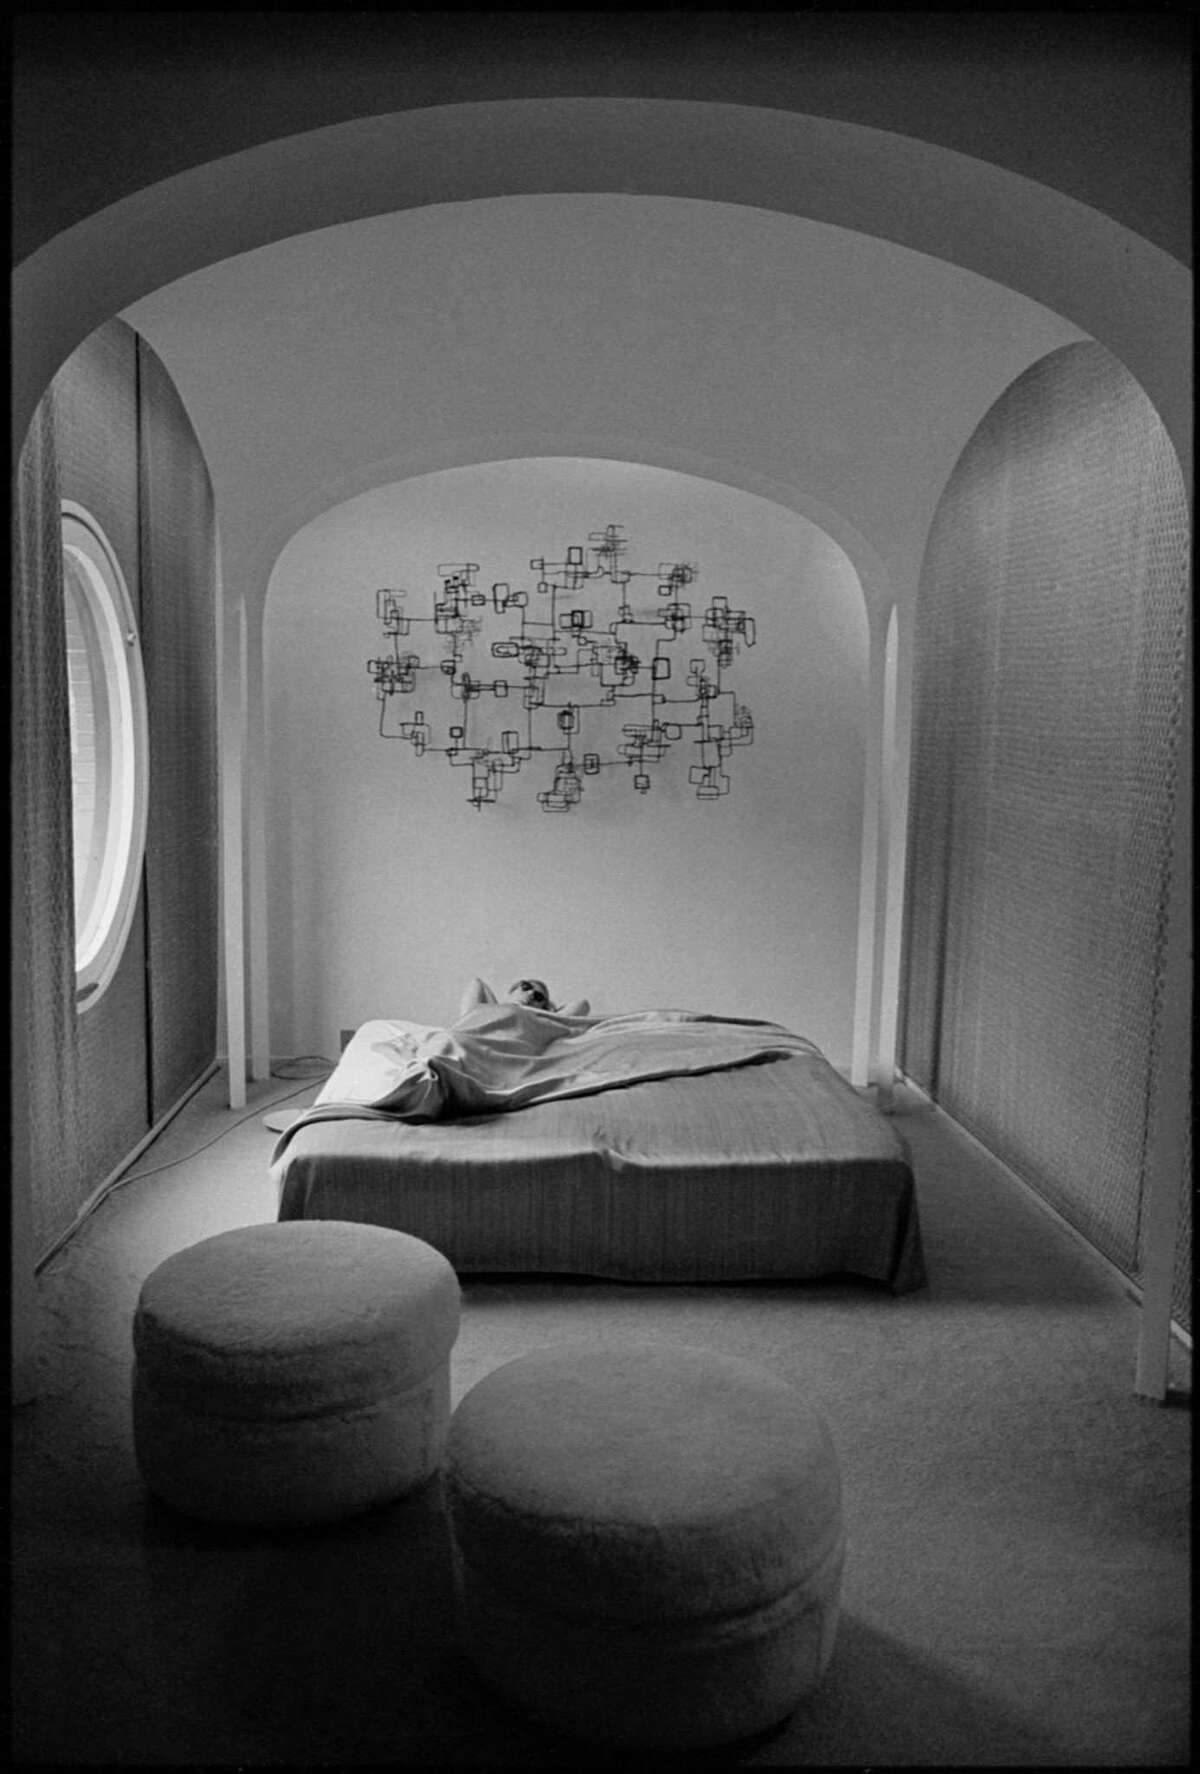 Andy Warhol rests in the guest house of Philip Johnson's Glass House in New Canaan in the winter of 1964-65.